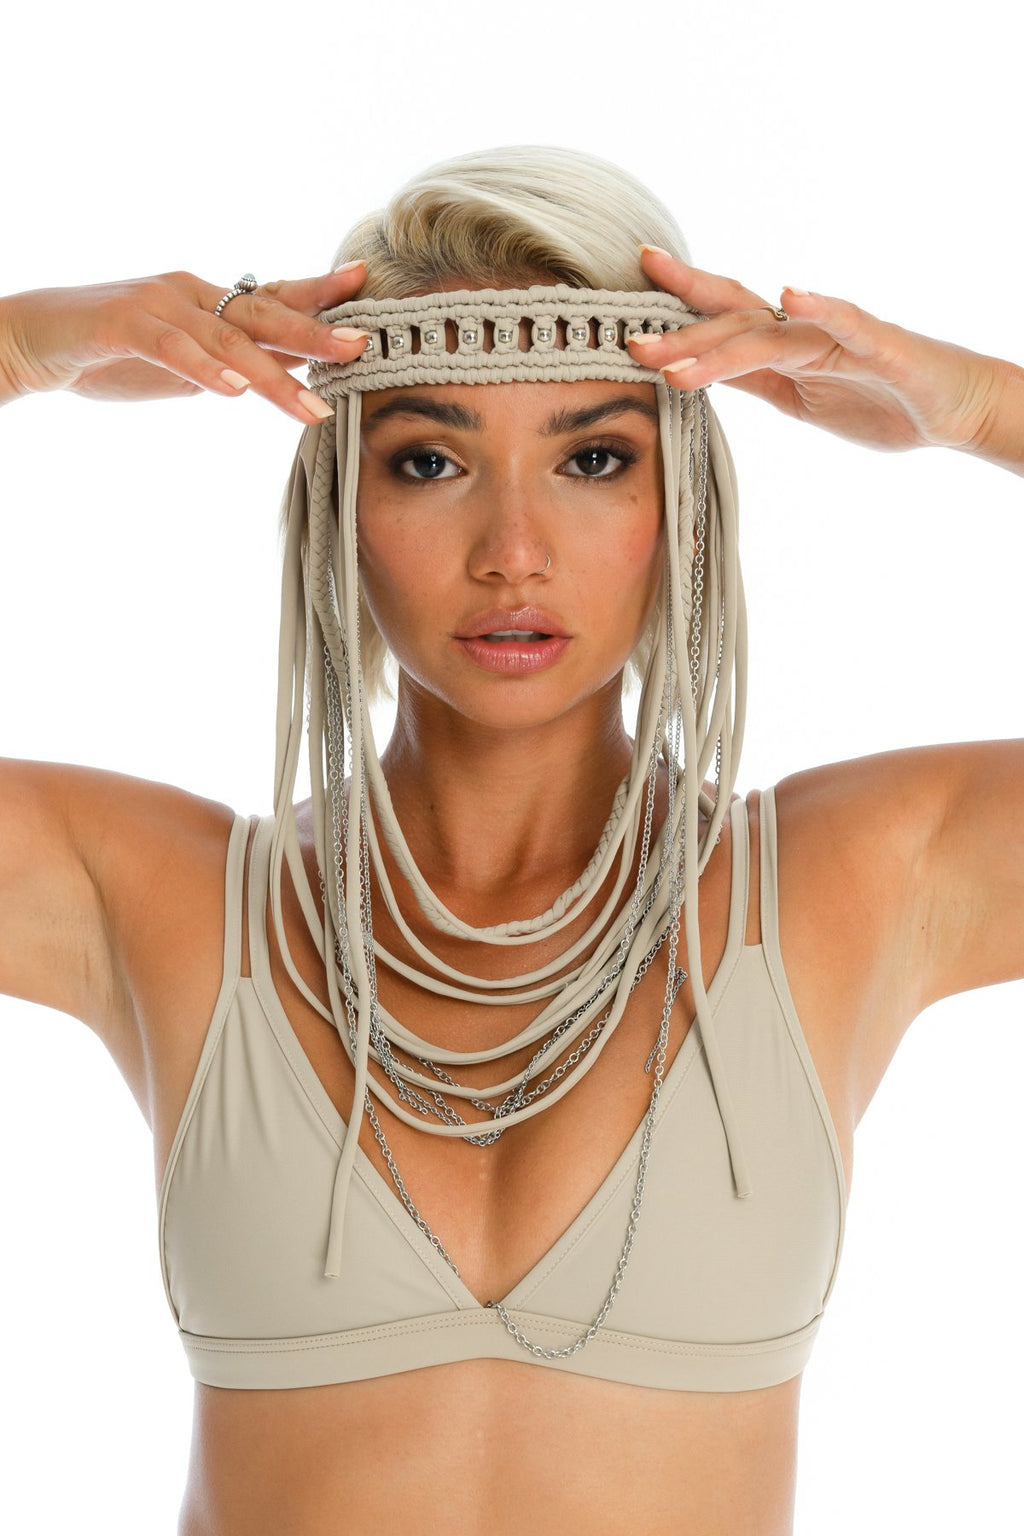 Boho hand-crafted nude headpiece, macrame festival body jewellery